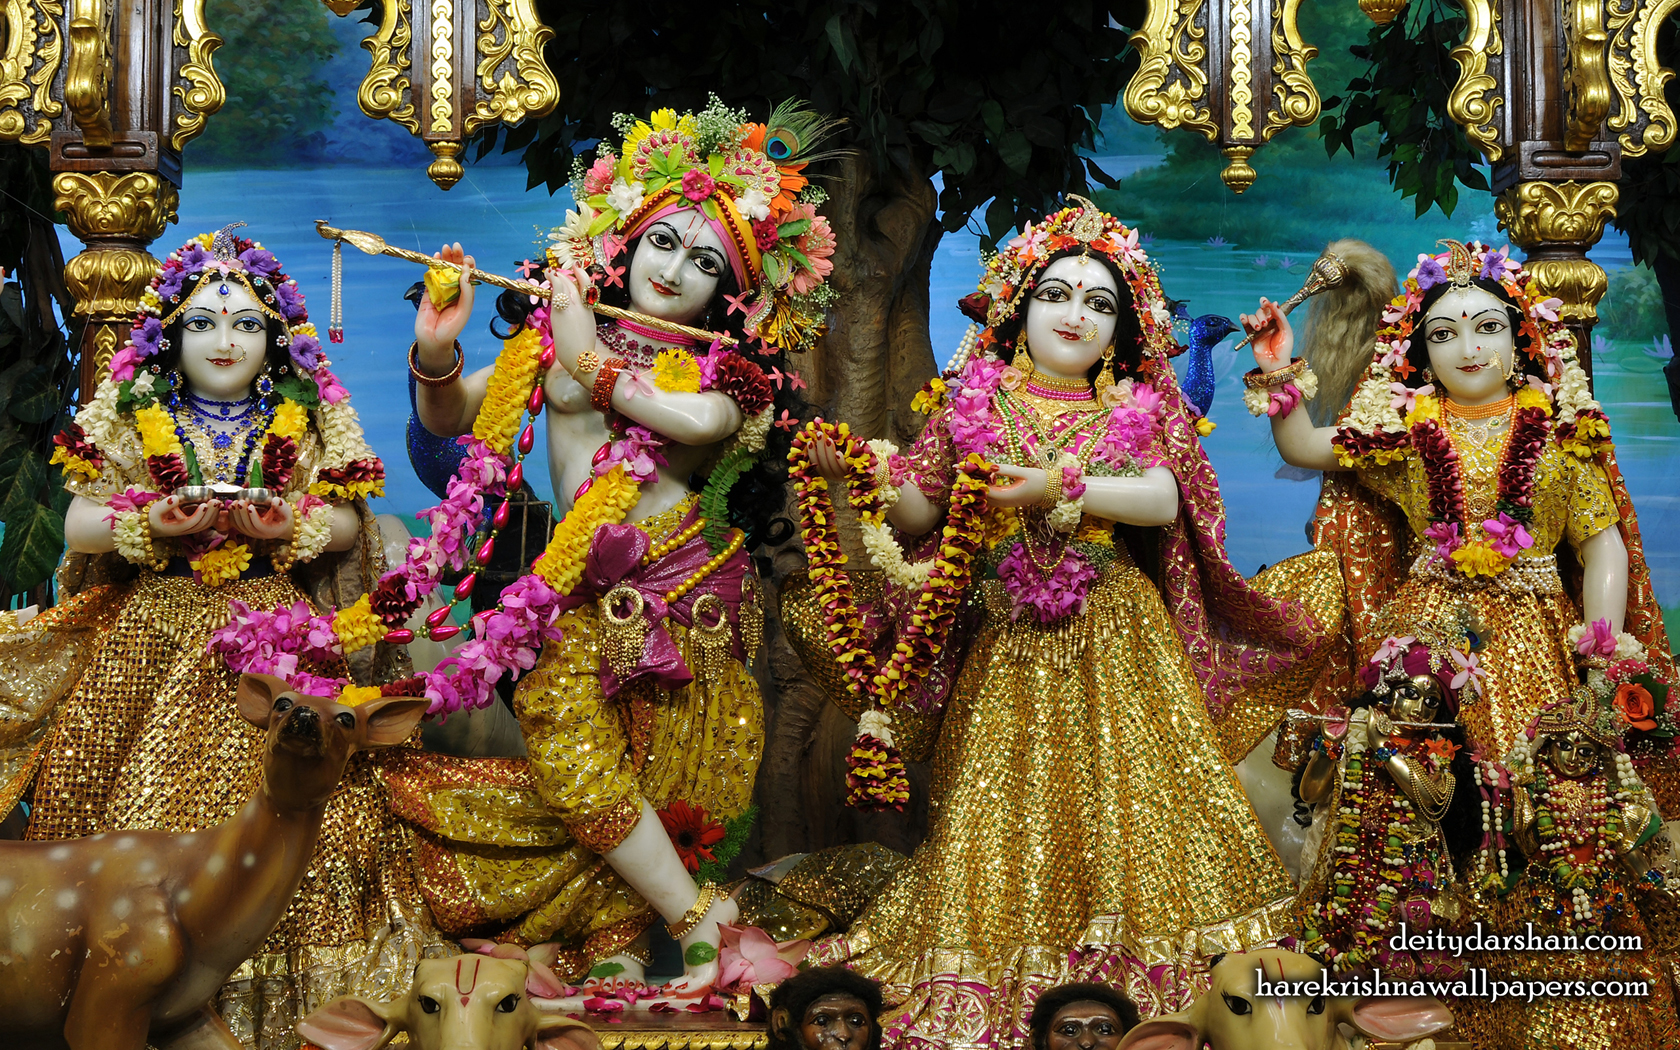 Sri Sri Radha Gopinath Lalita Vishakha Wallpaper (066) Size 1680x1050 Download